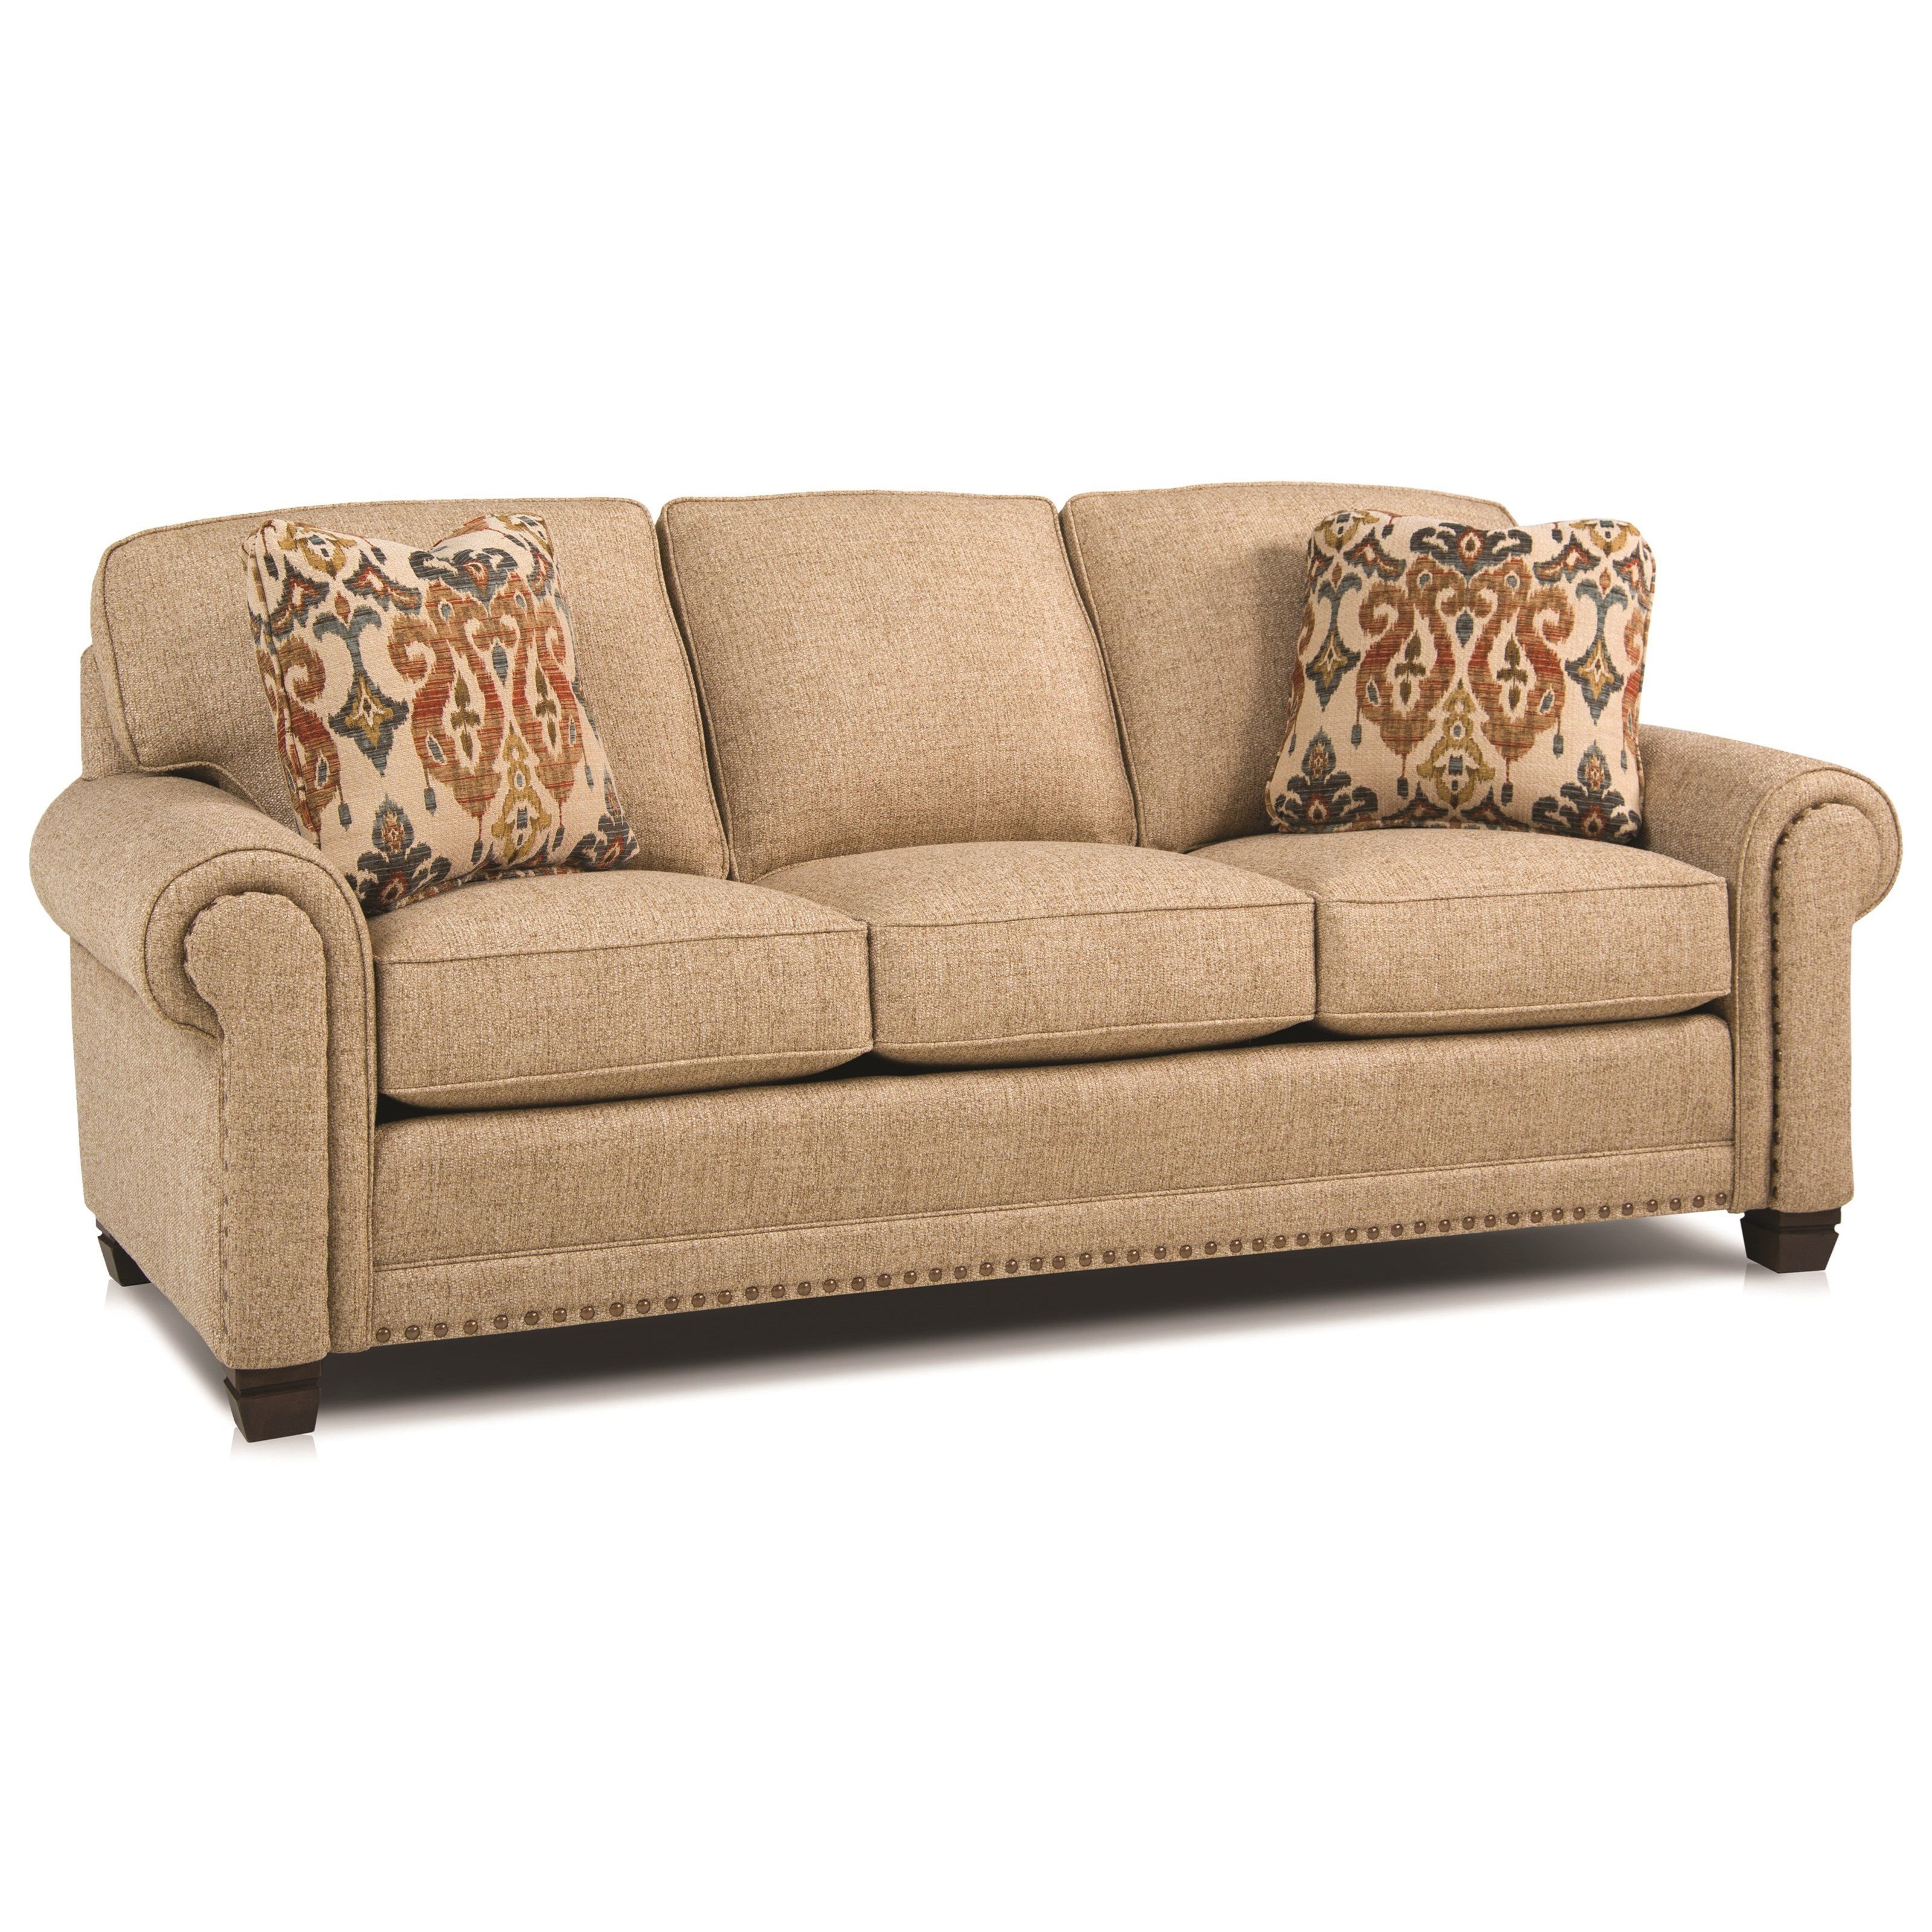 393 Traditional Stationary Sofa by Smith Brothers at Pilgrim Furniture City